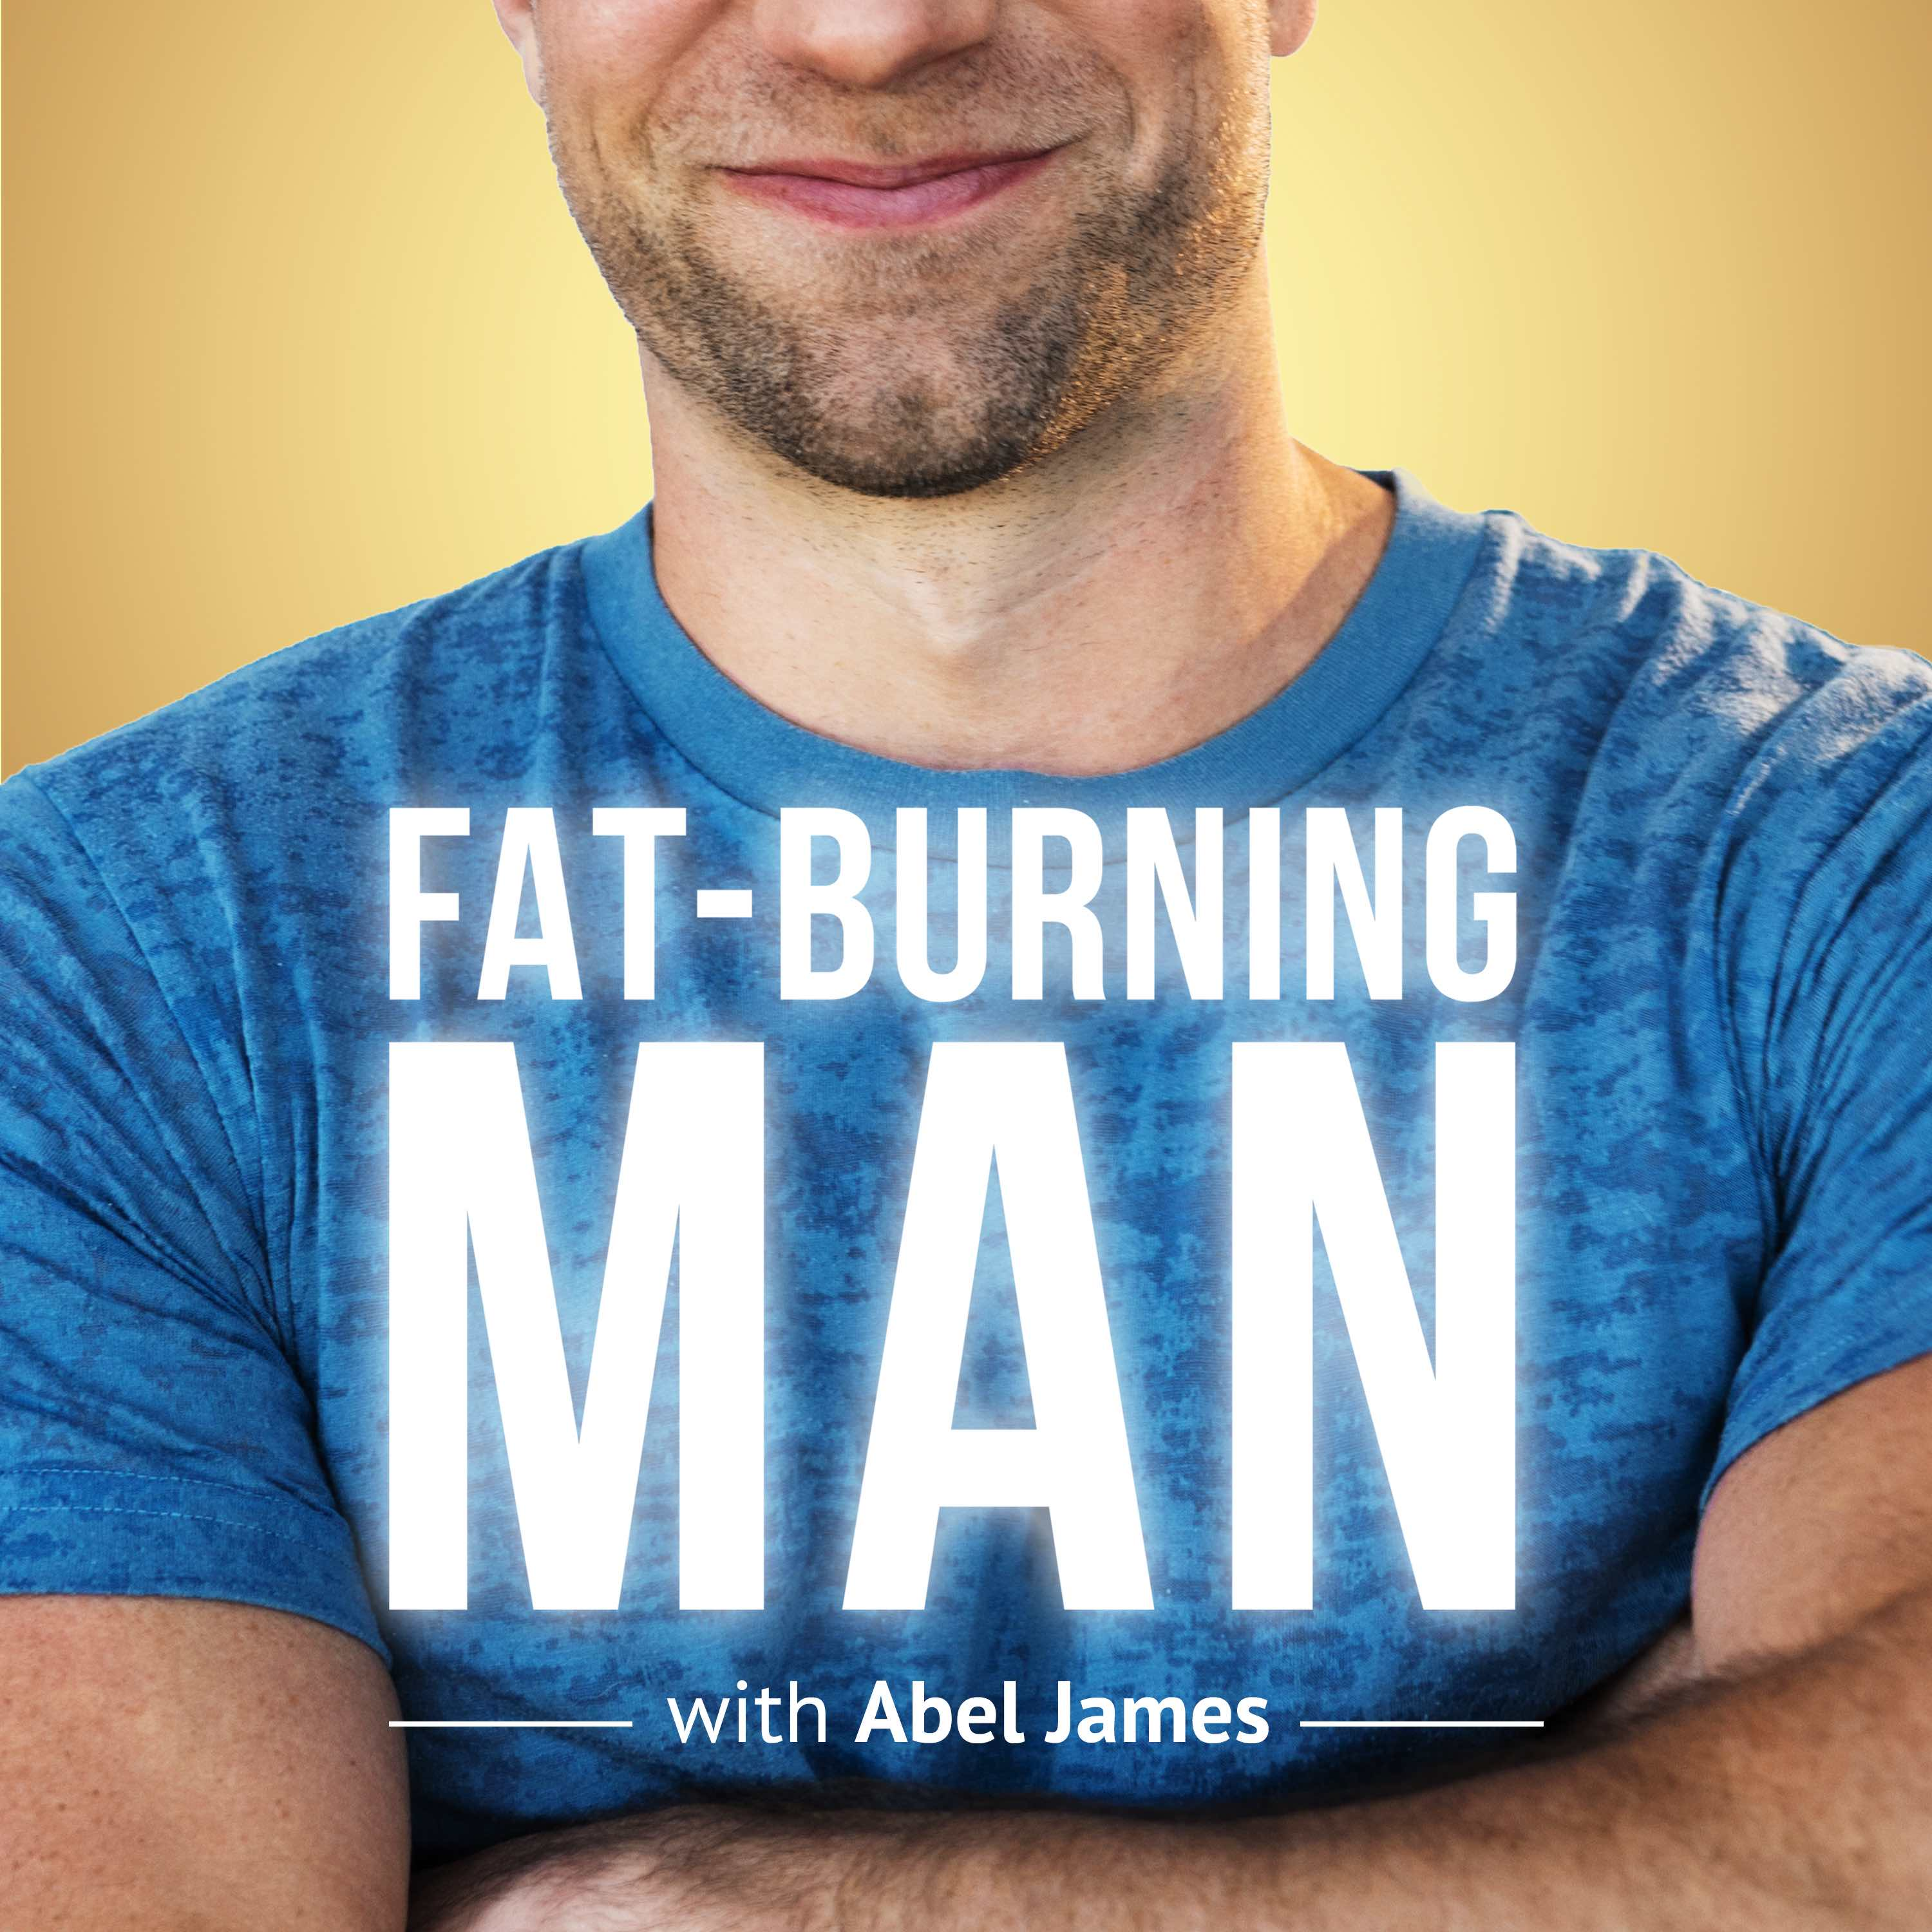 The Fat-Burning Man Show by Abel James. Paleo Nutrition, Ancestral Health, and Primal Fitness